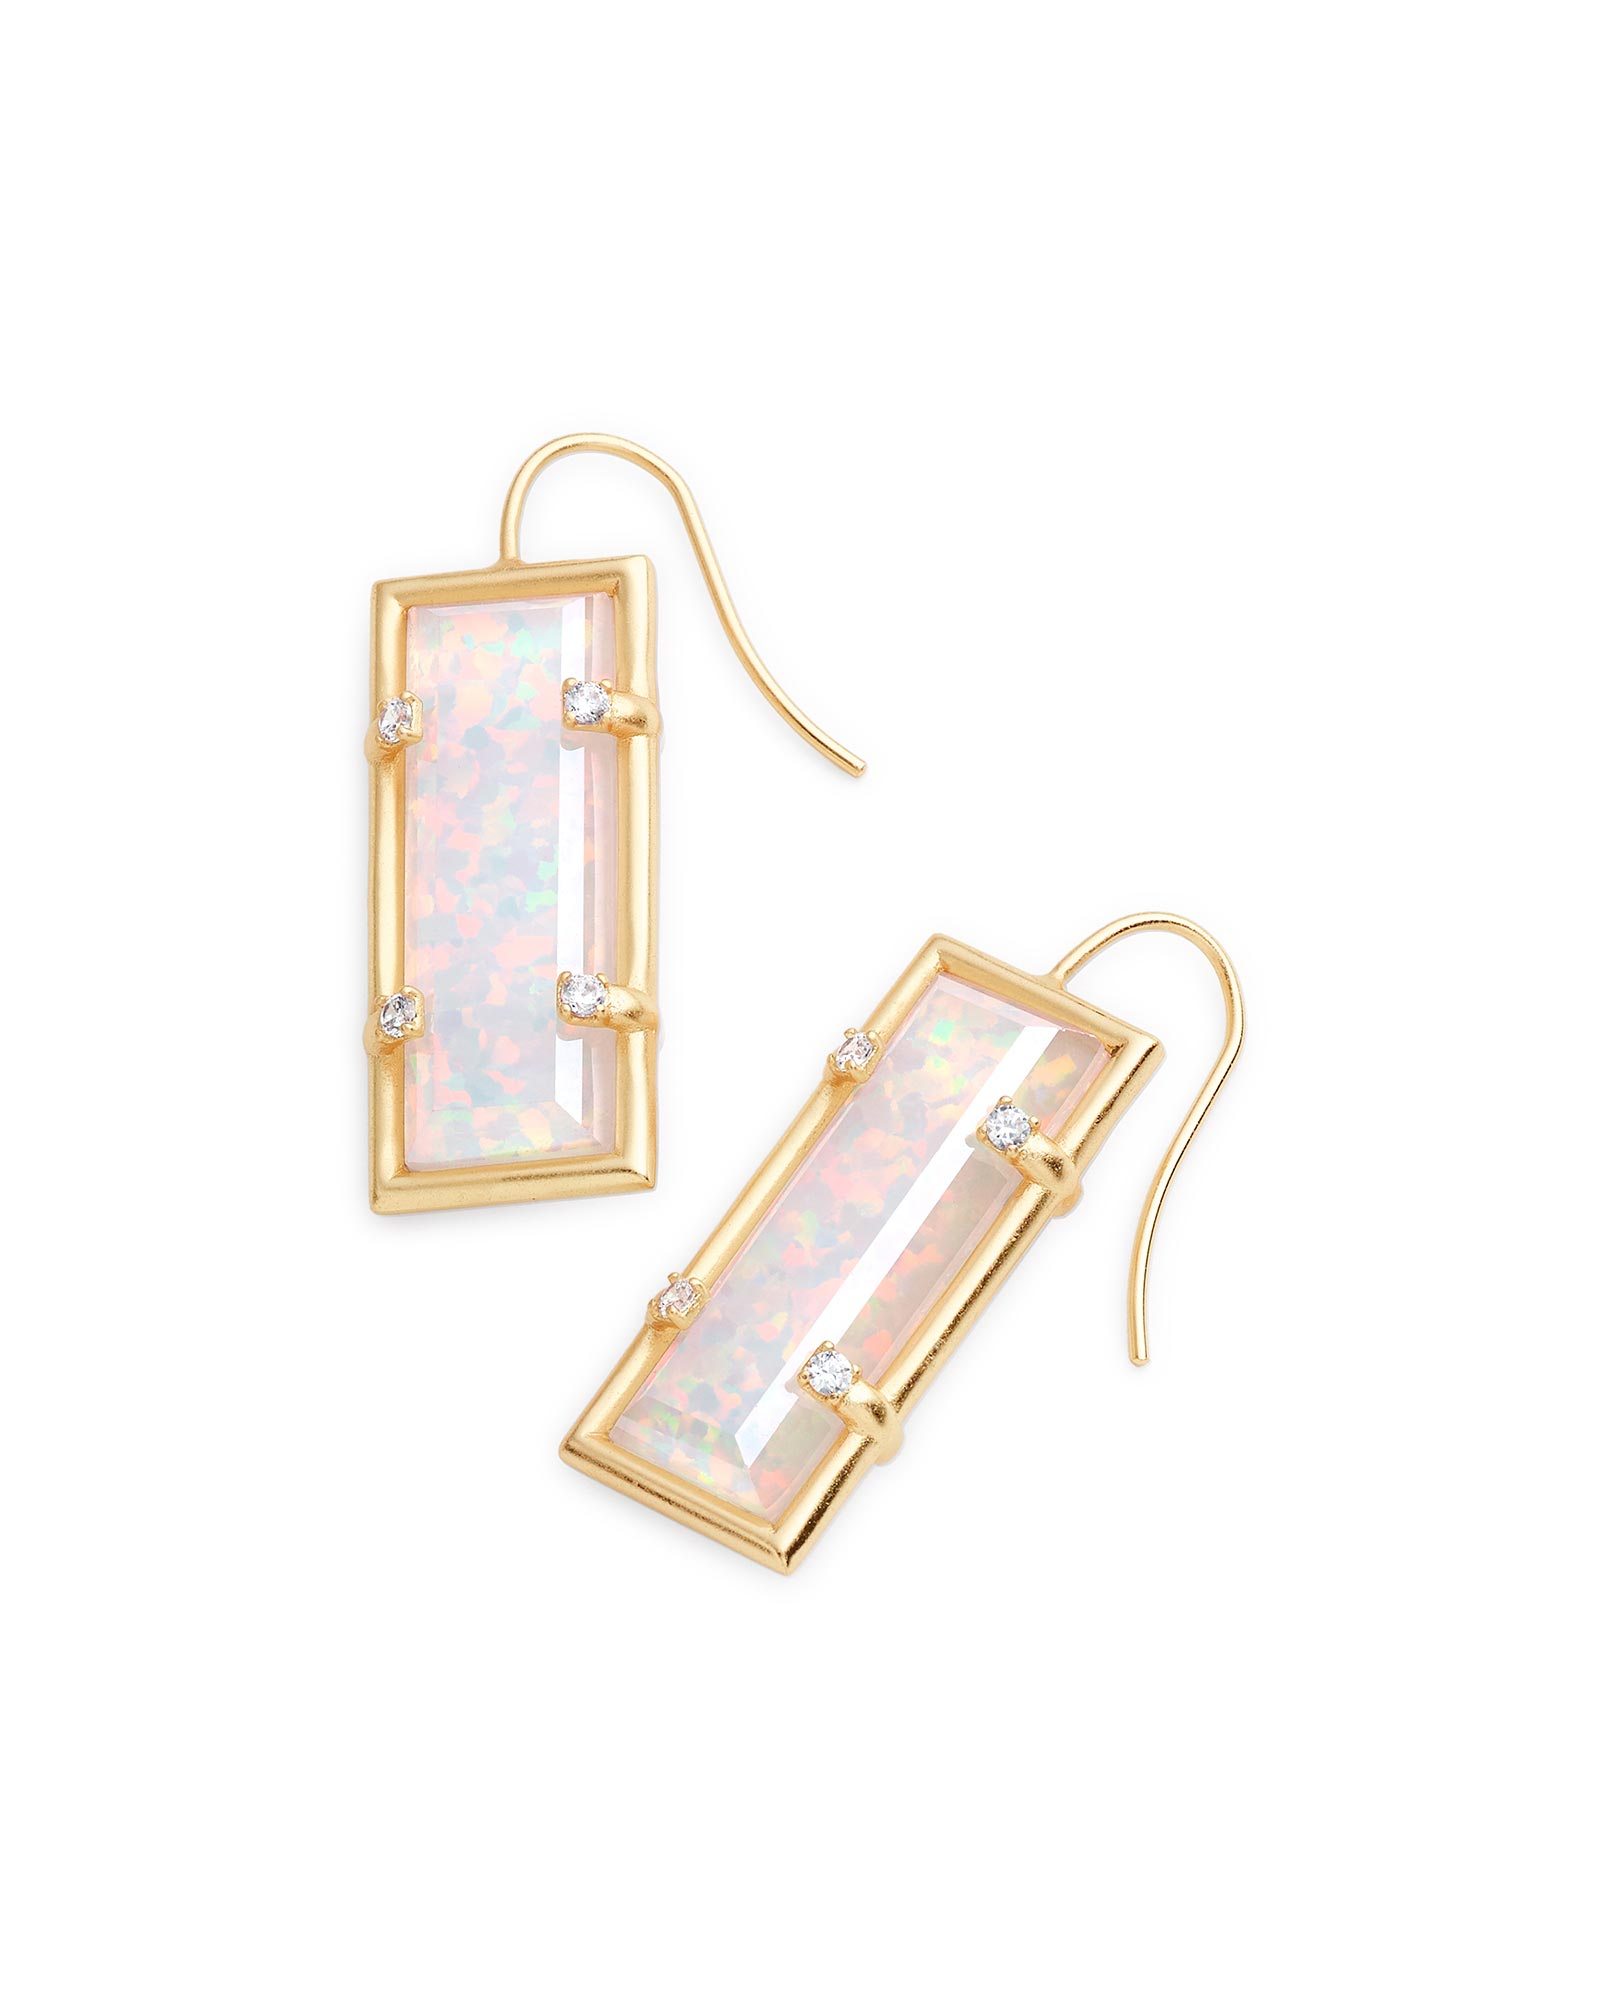 Knox Drop Earrings in Gold